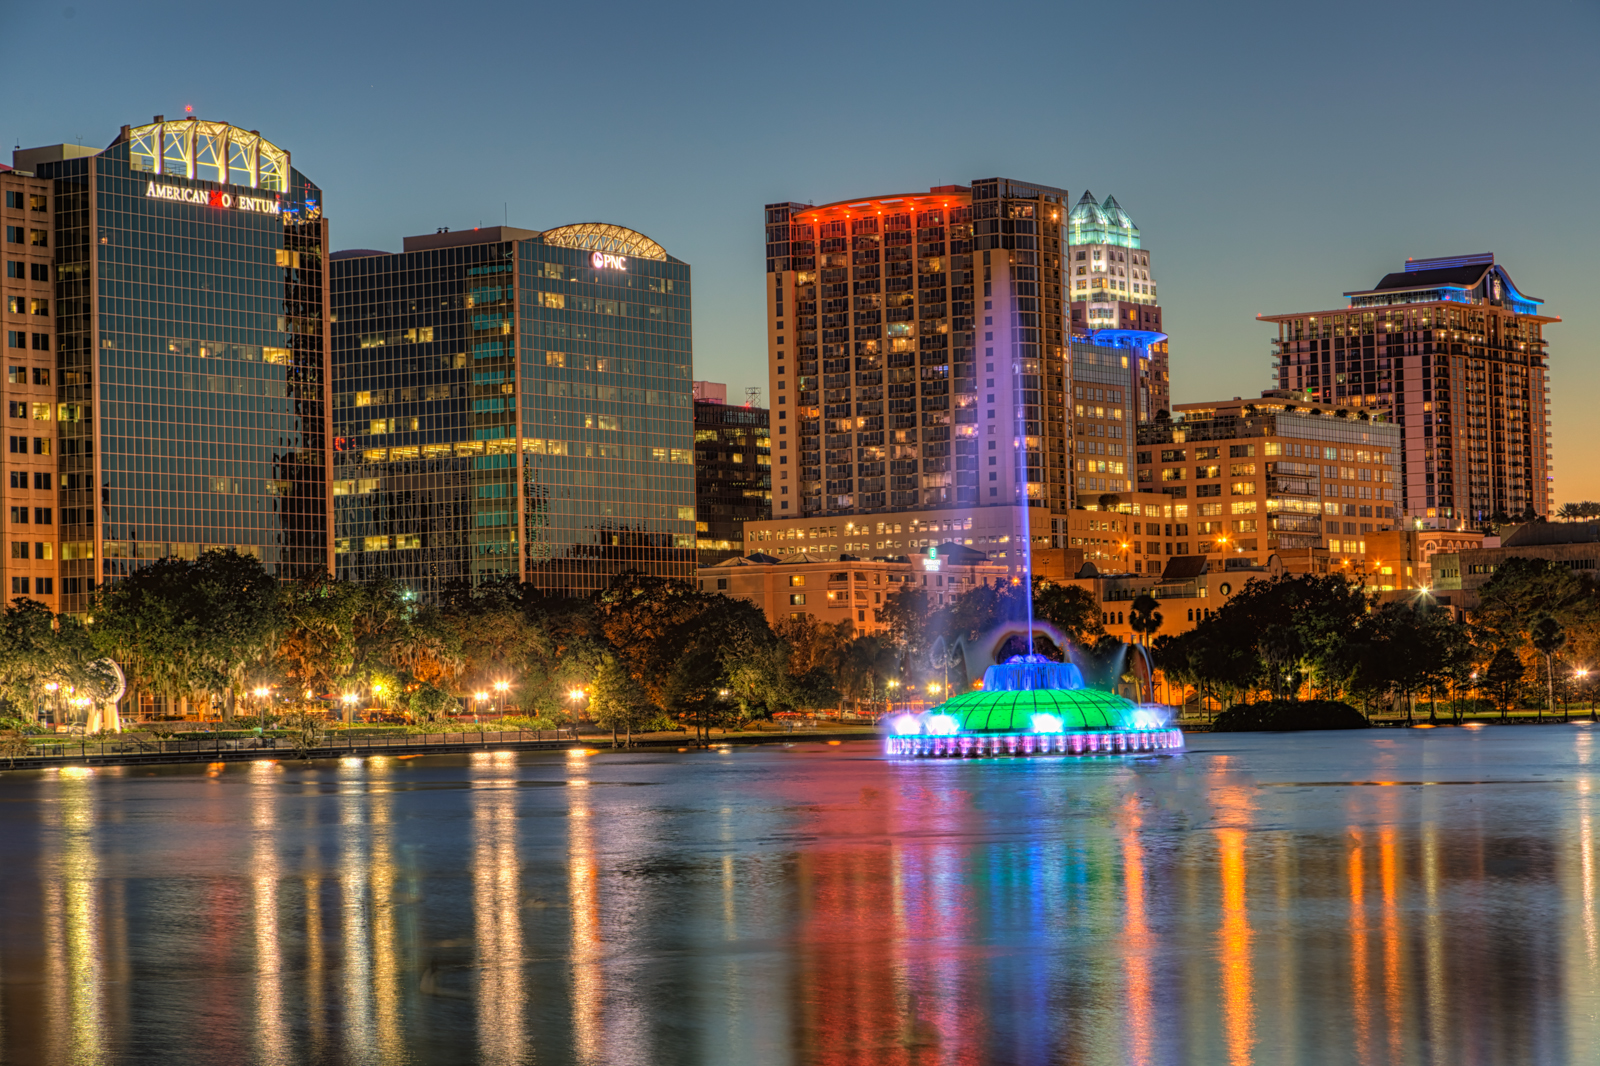 Lake Eola Fountain and Buildings